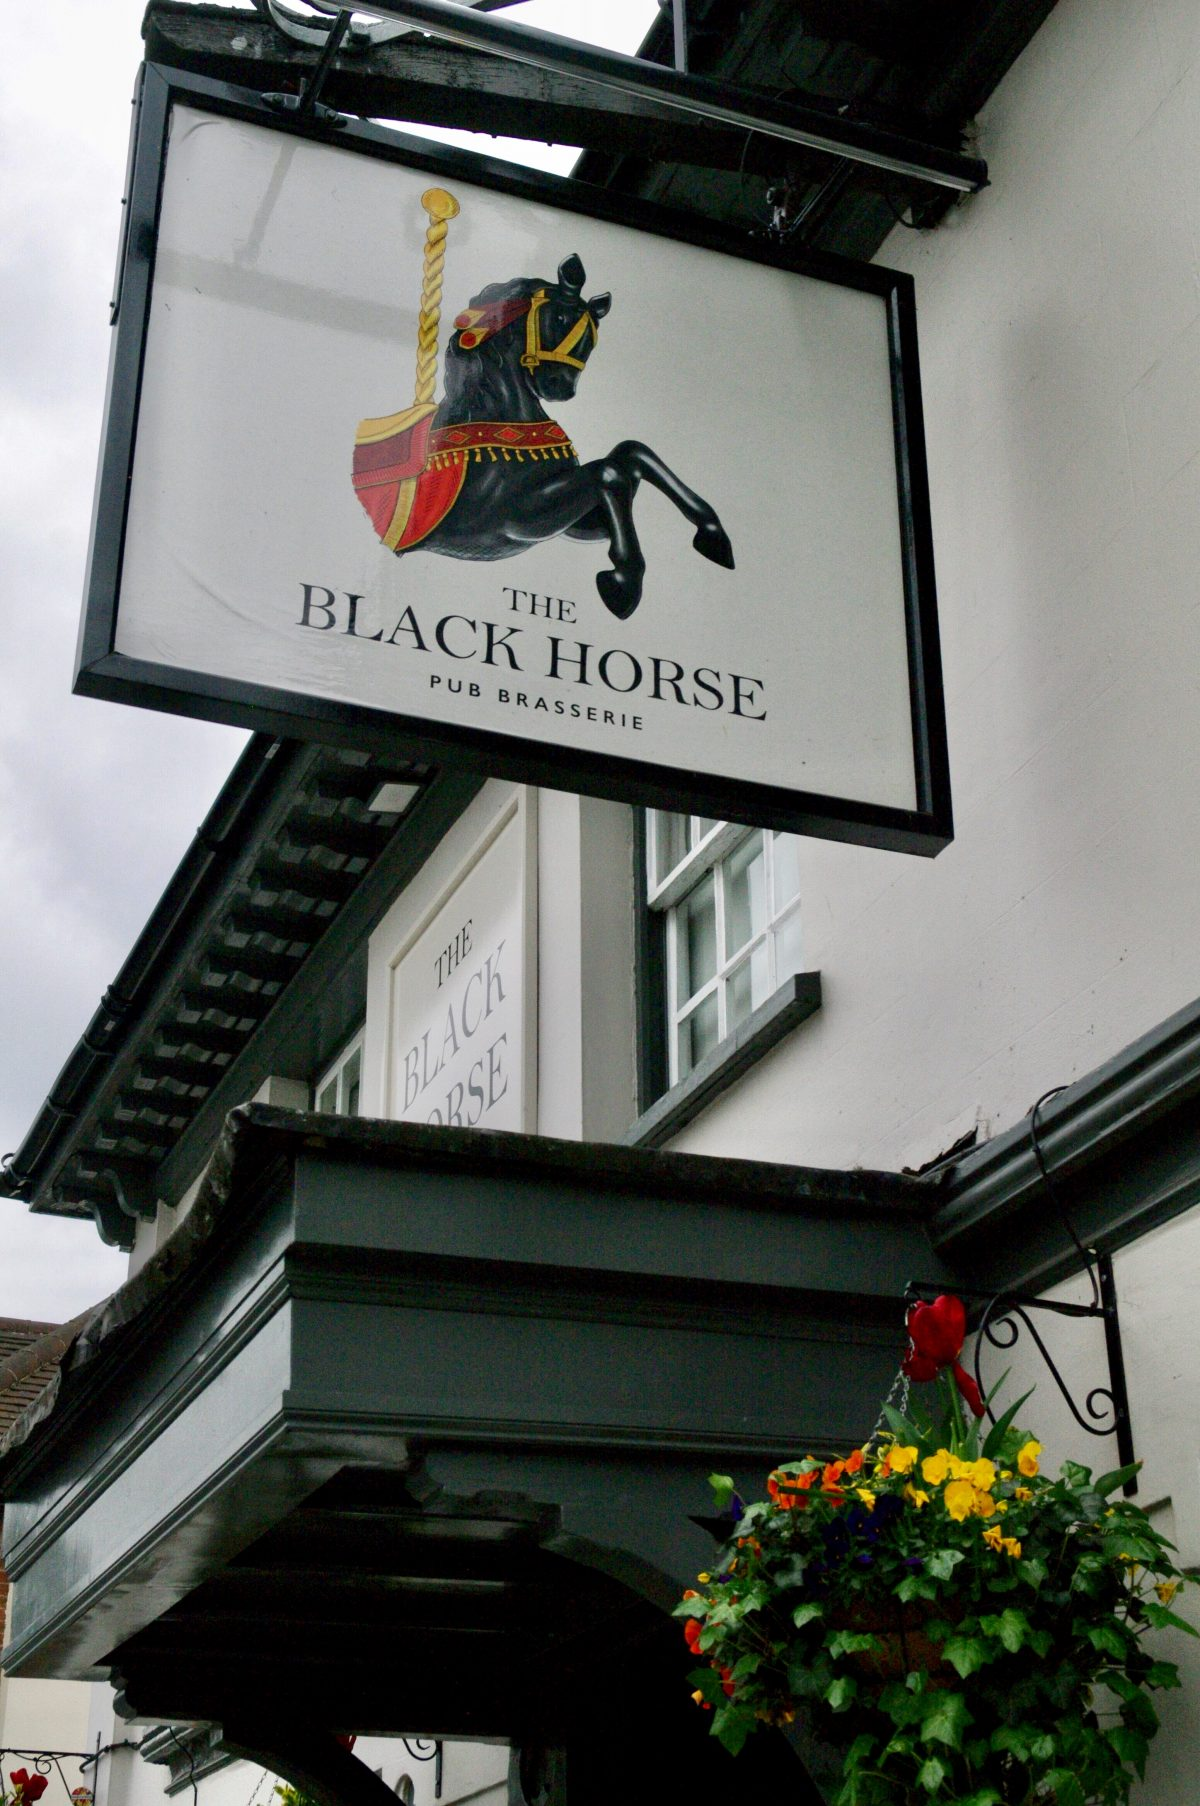 The Black Horse Thame, Oxfordshire | Bitten Oxford